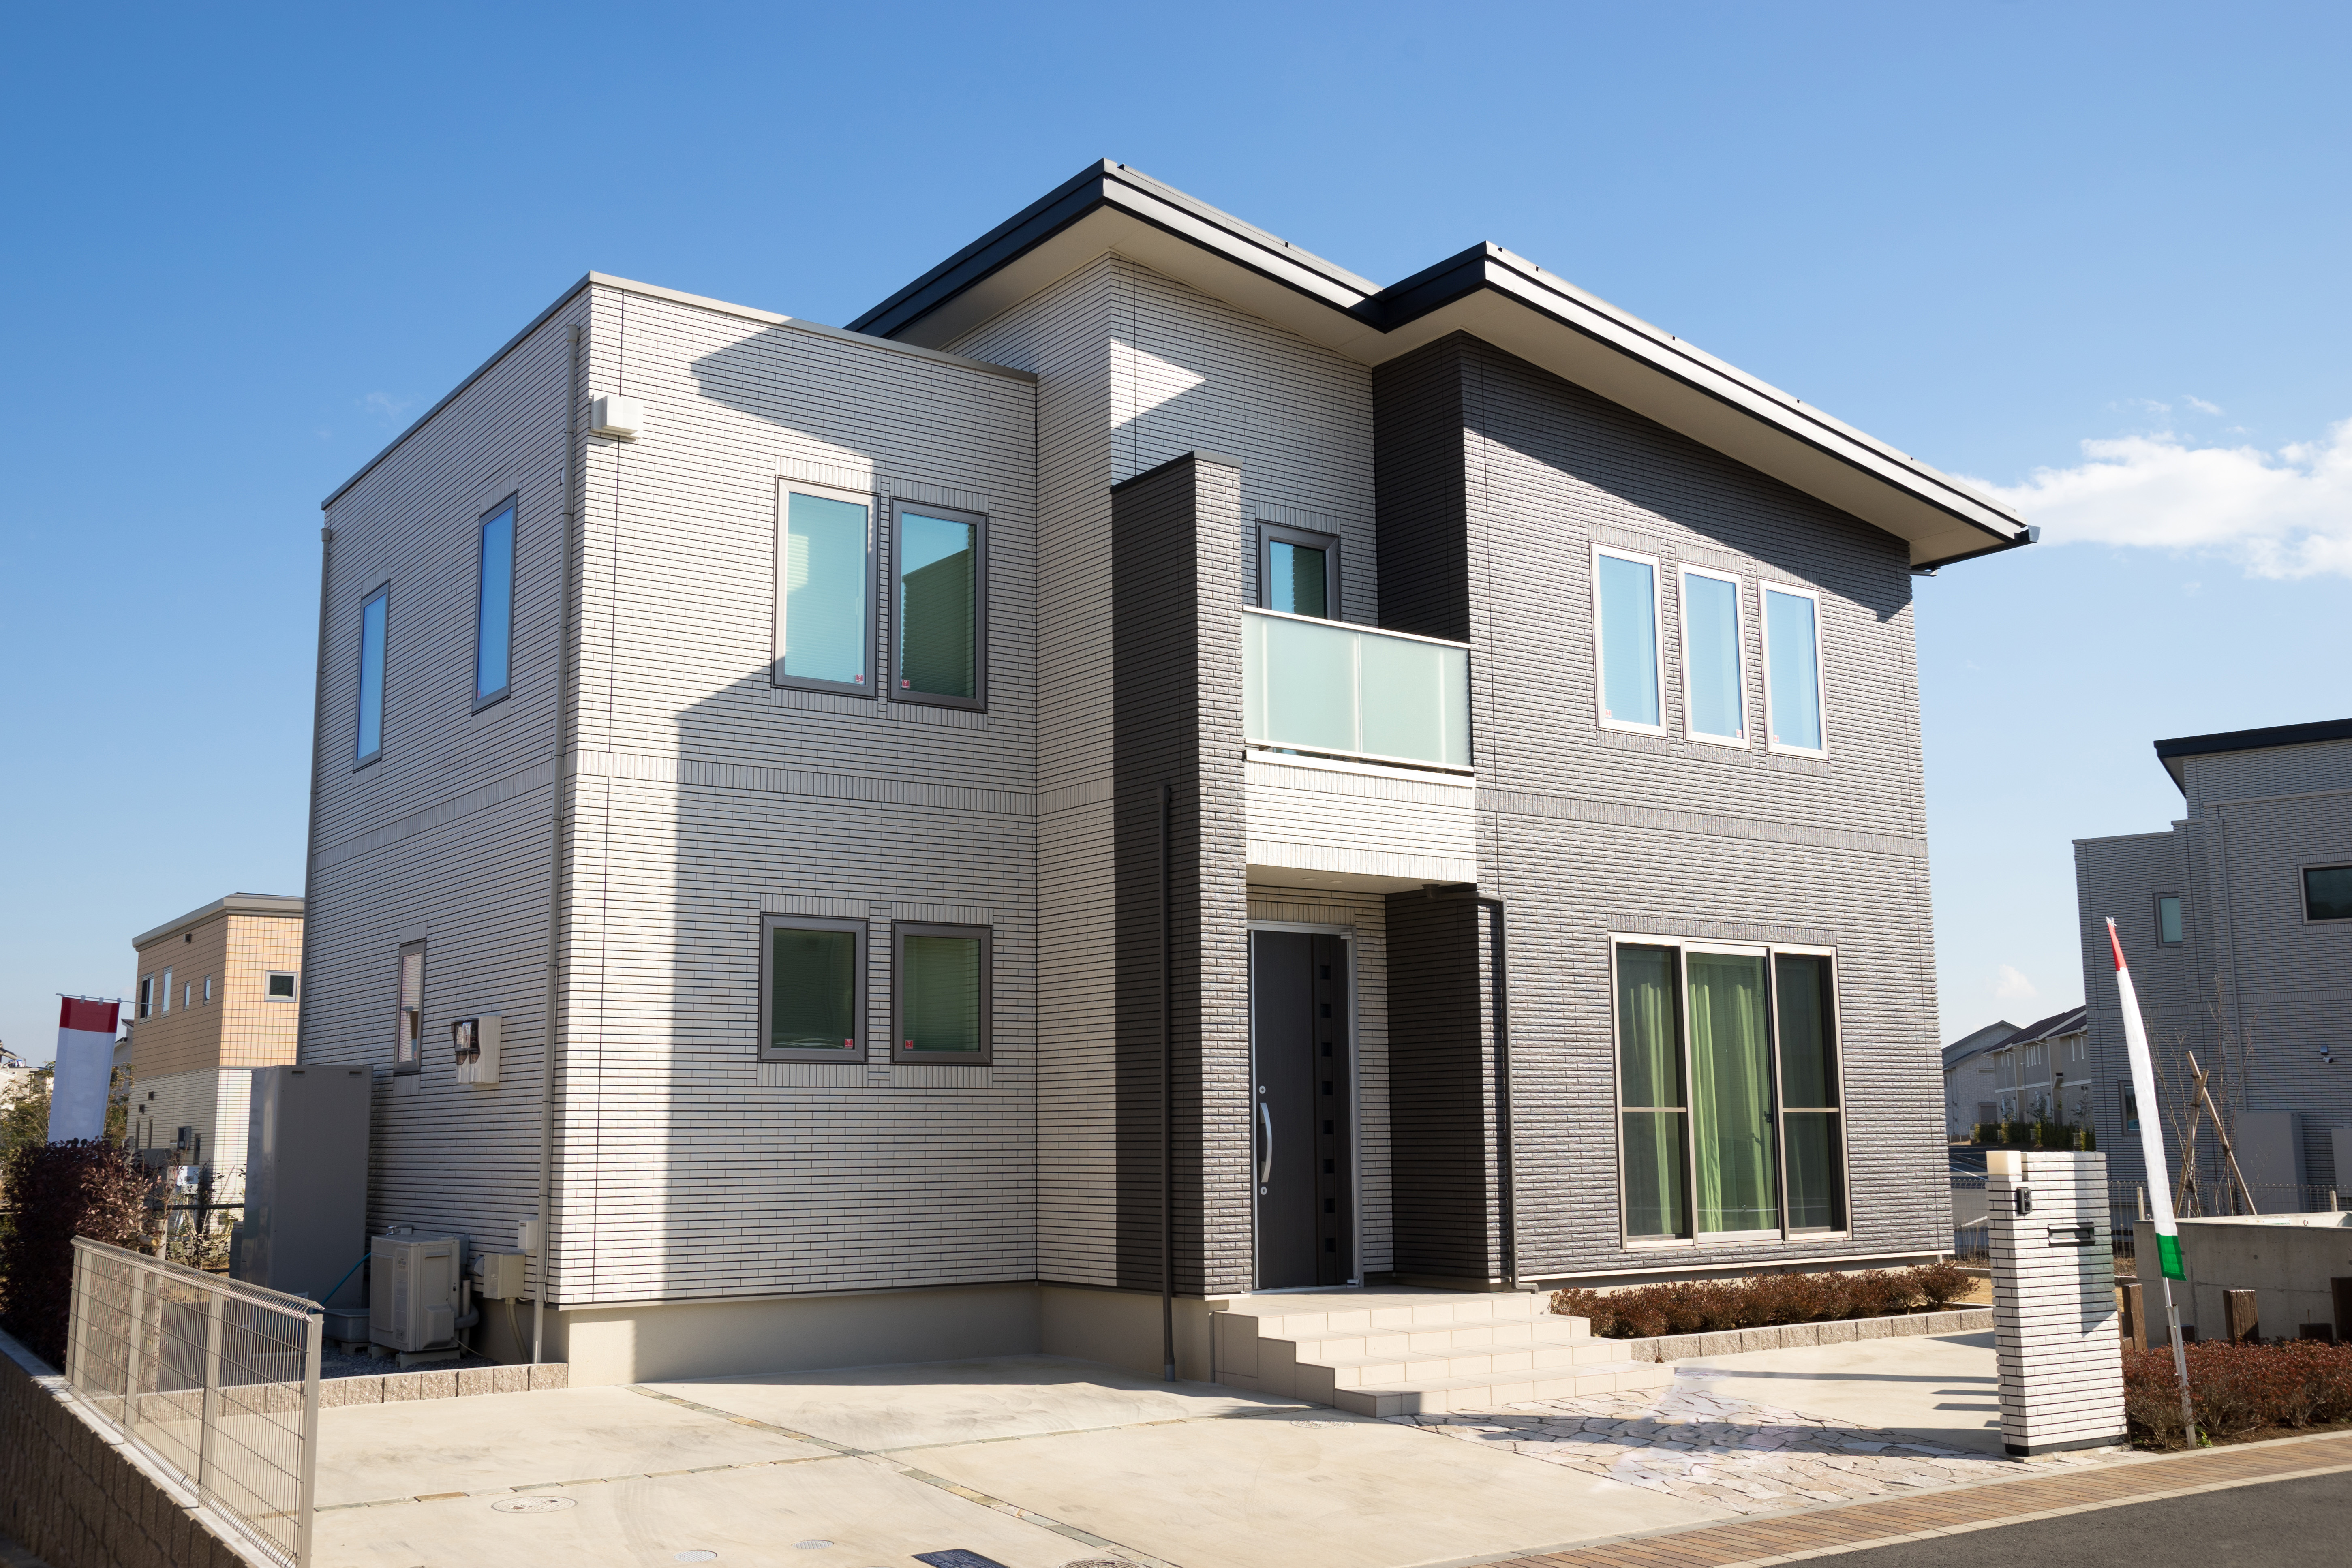 The 10 top emerging trends that will shape real estate in for New home construction trends